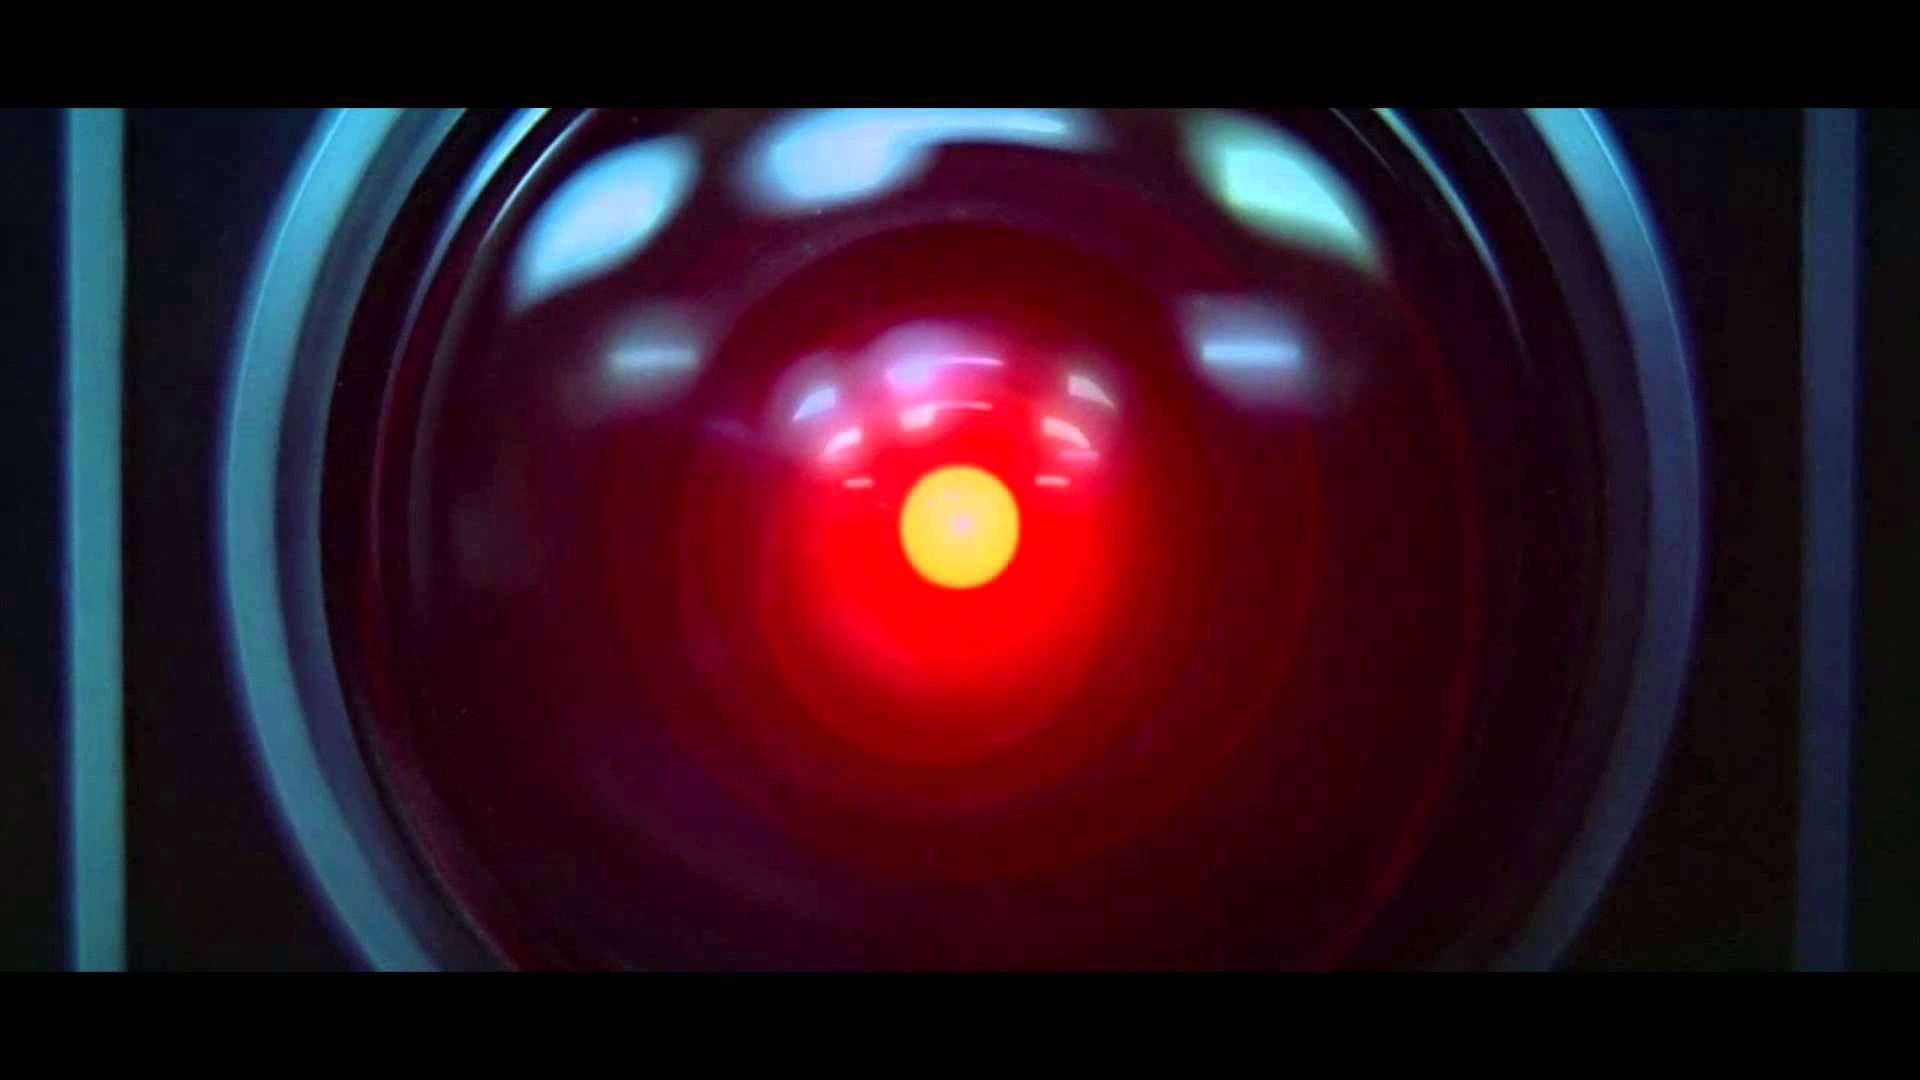 hal 9000 eye 2001 space odyssey movie kubrick